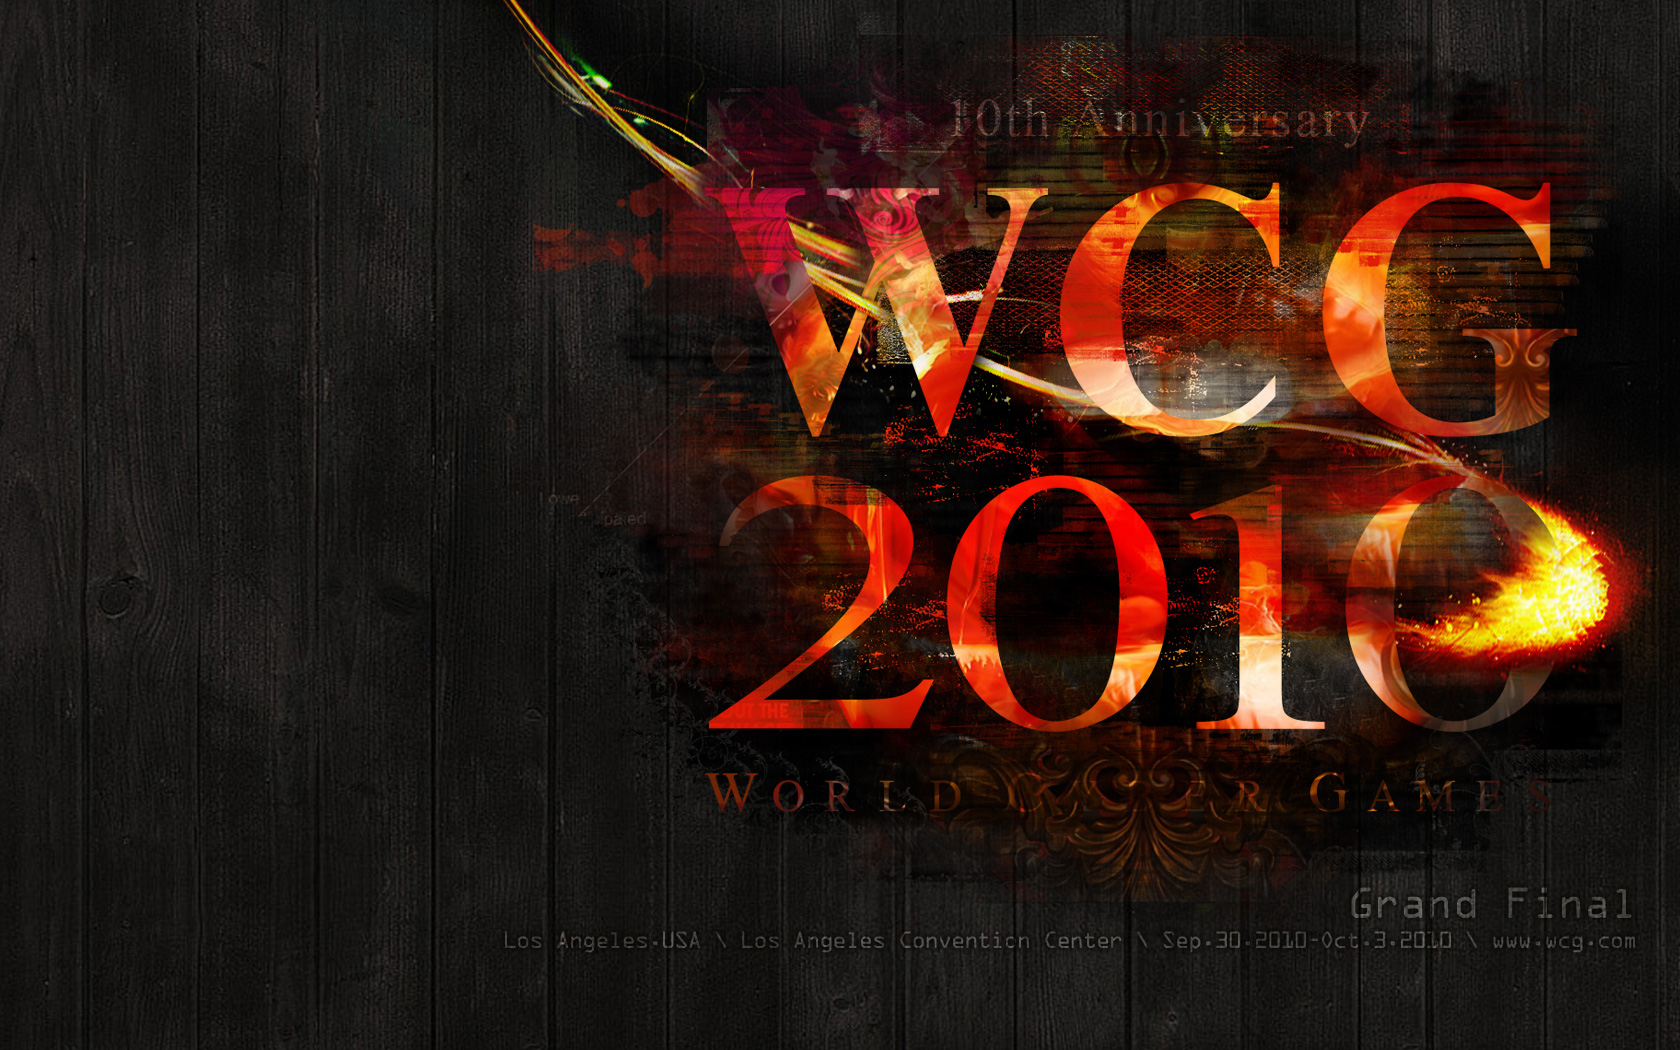 And the winner is… CHILE! con Oro panamericano de los videojuegos [WCG 2010]